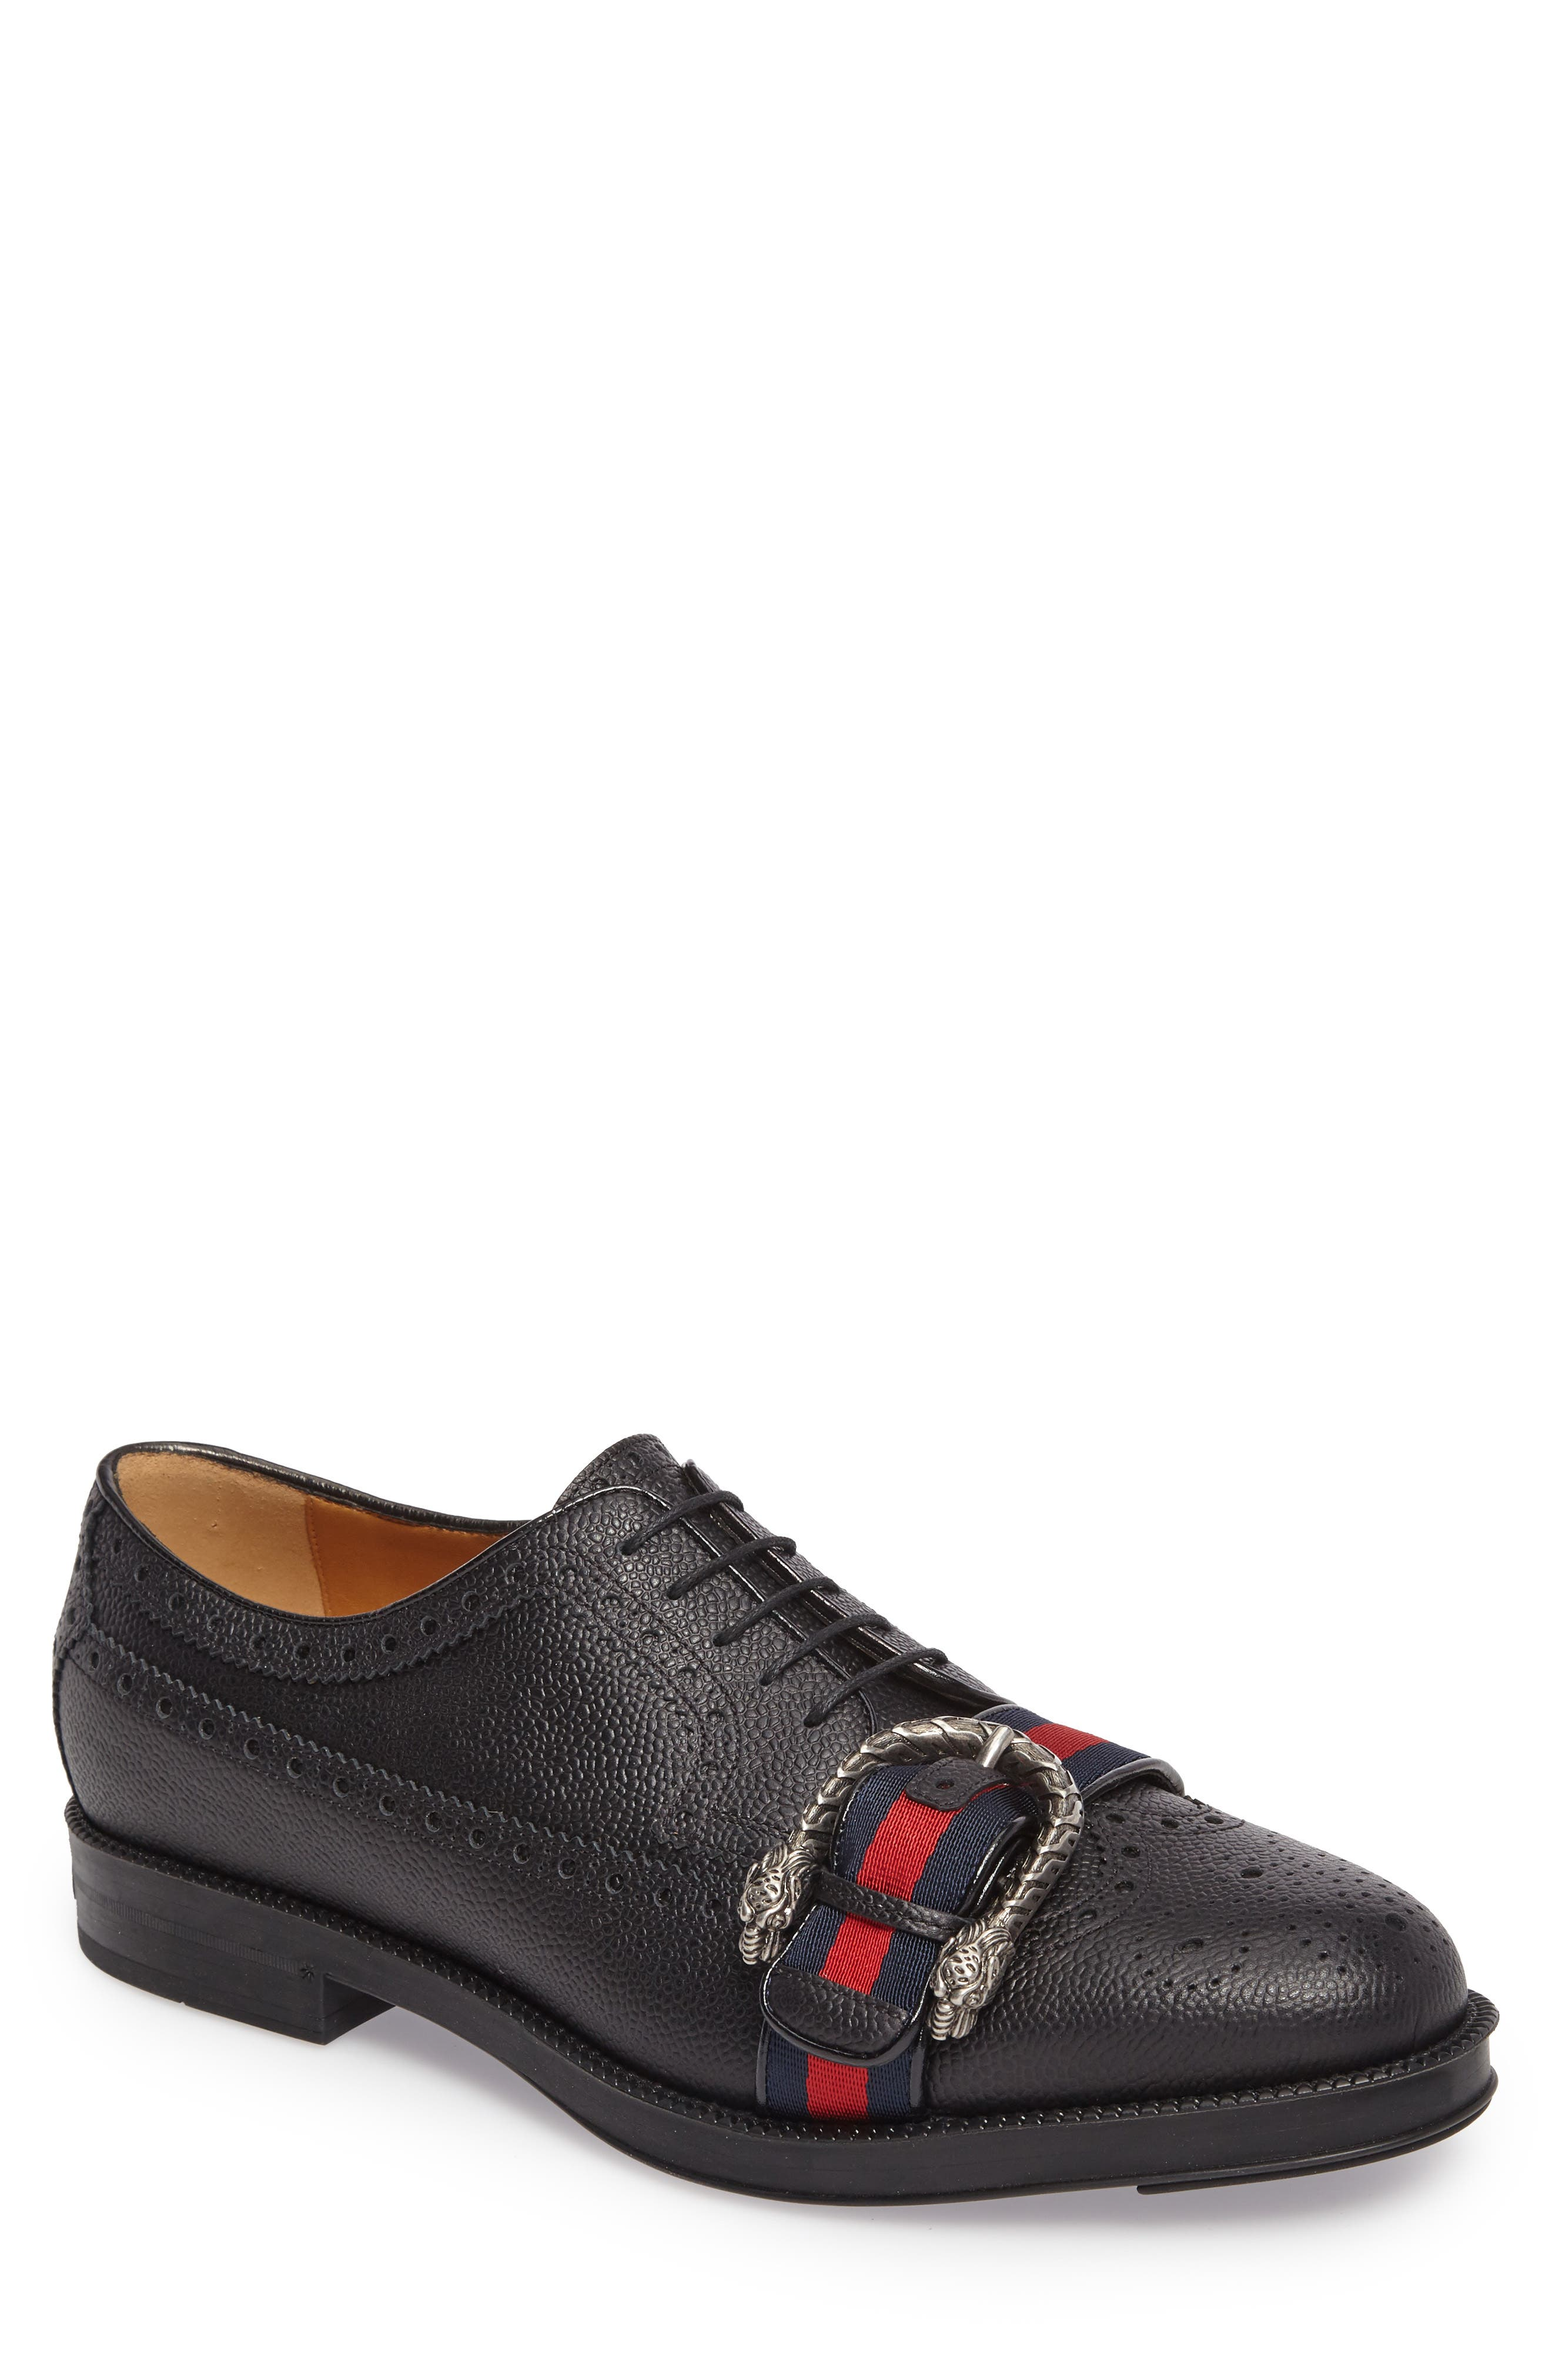 Gucci Web Detail Leather Brogue Derby